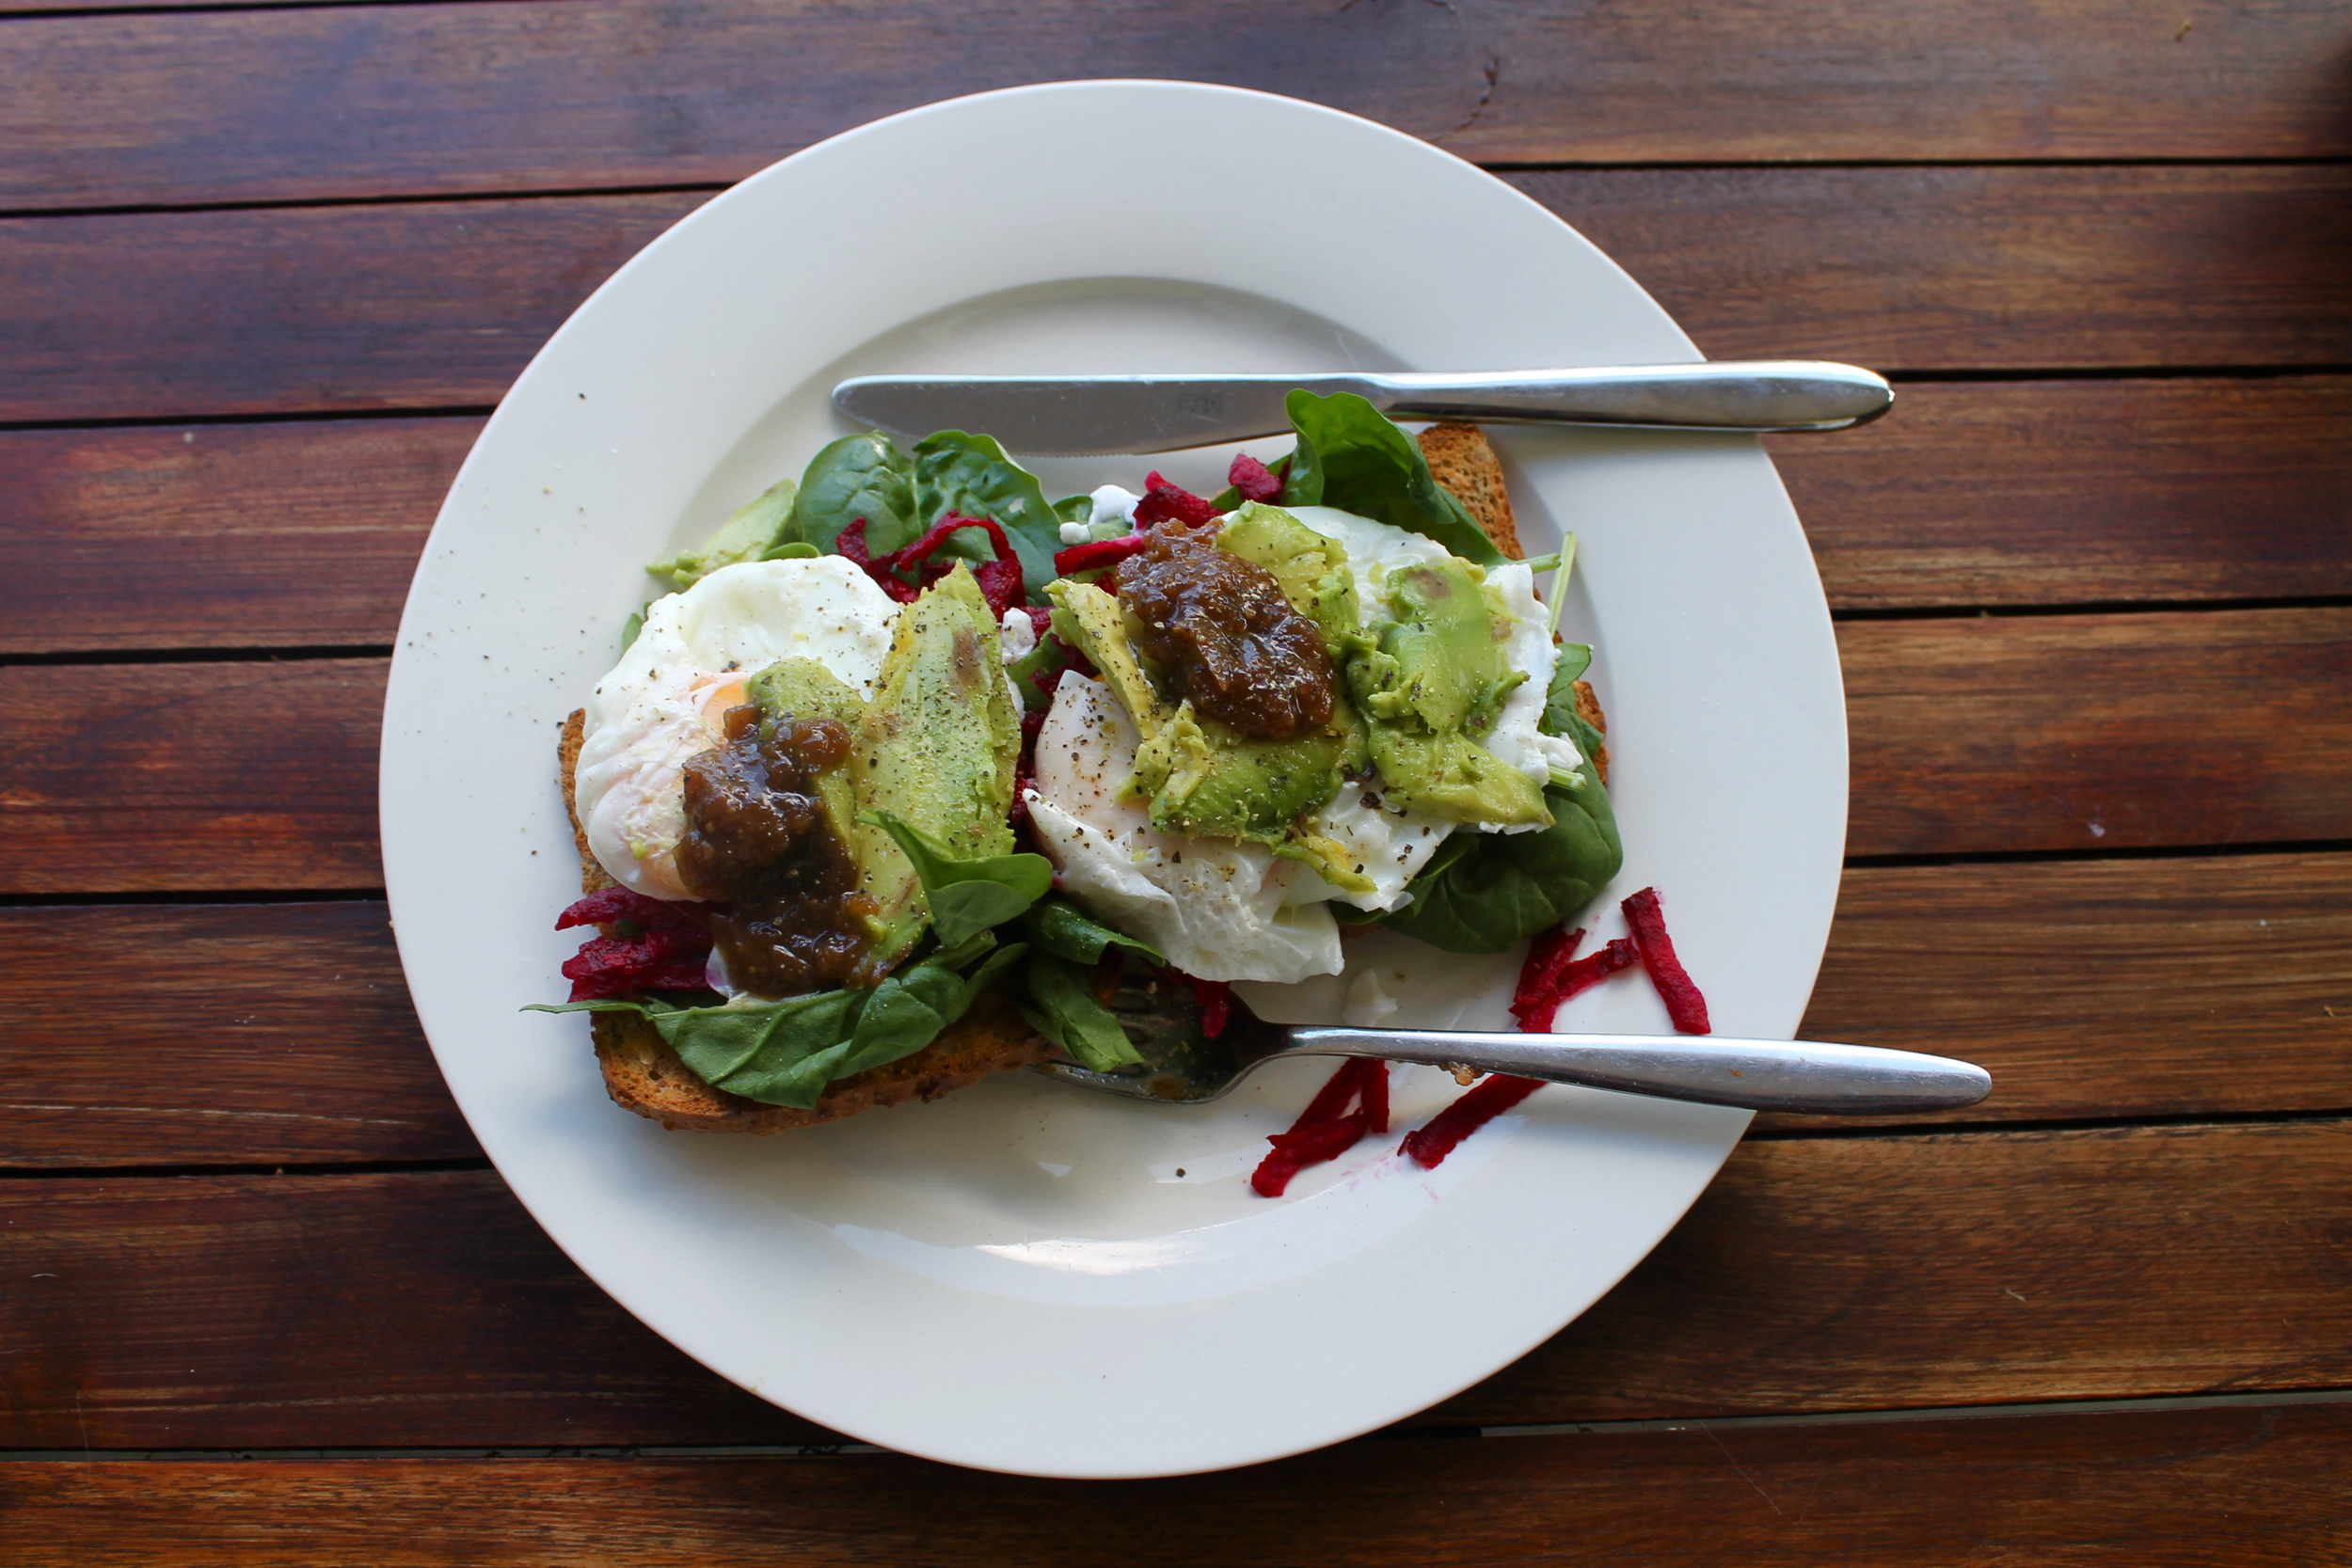 Homemade poached eggs with beet root and chutney (very New Zealand)